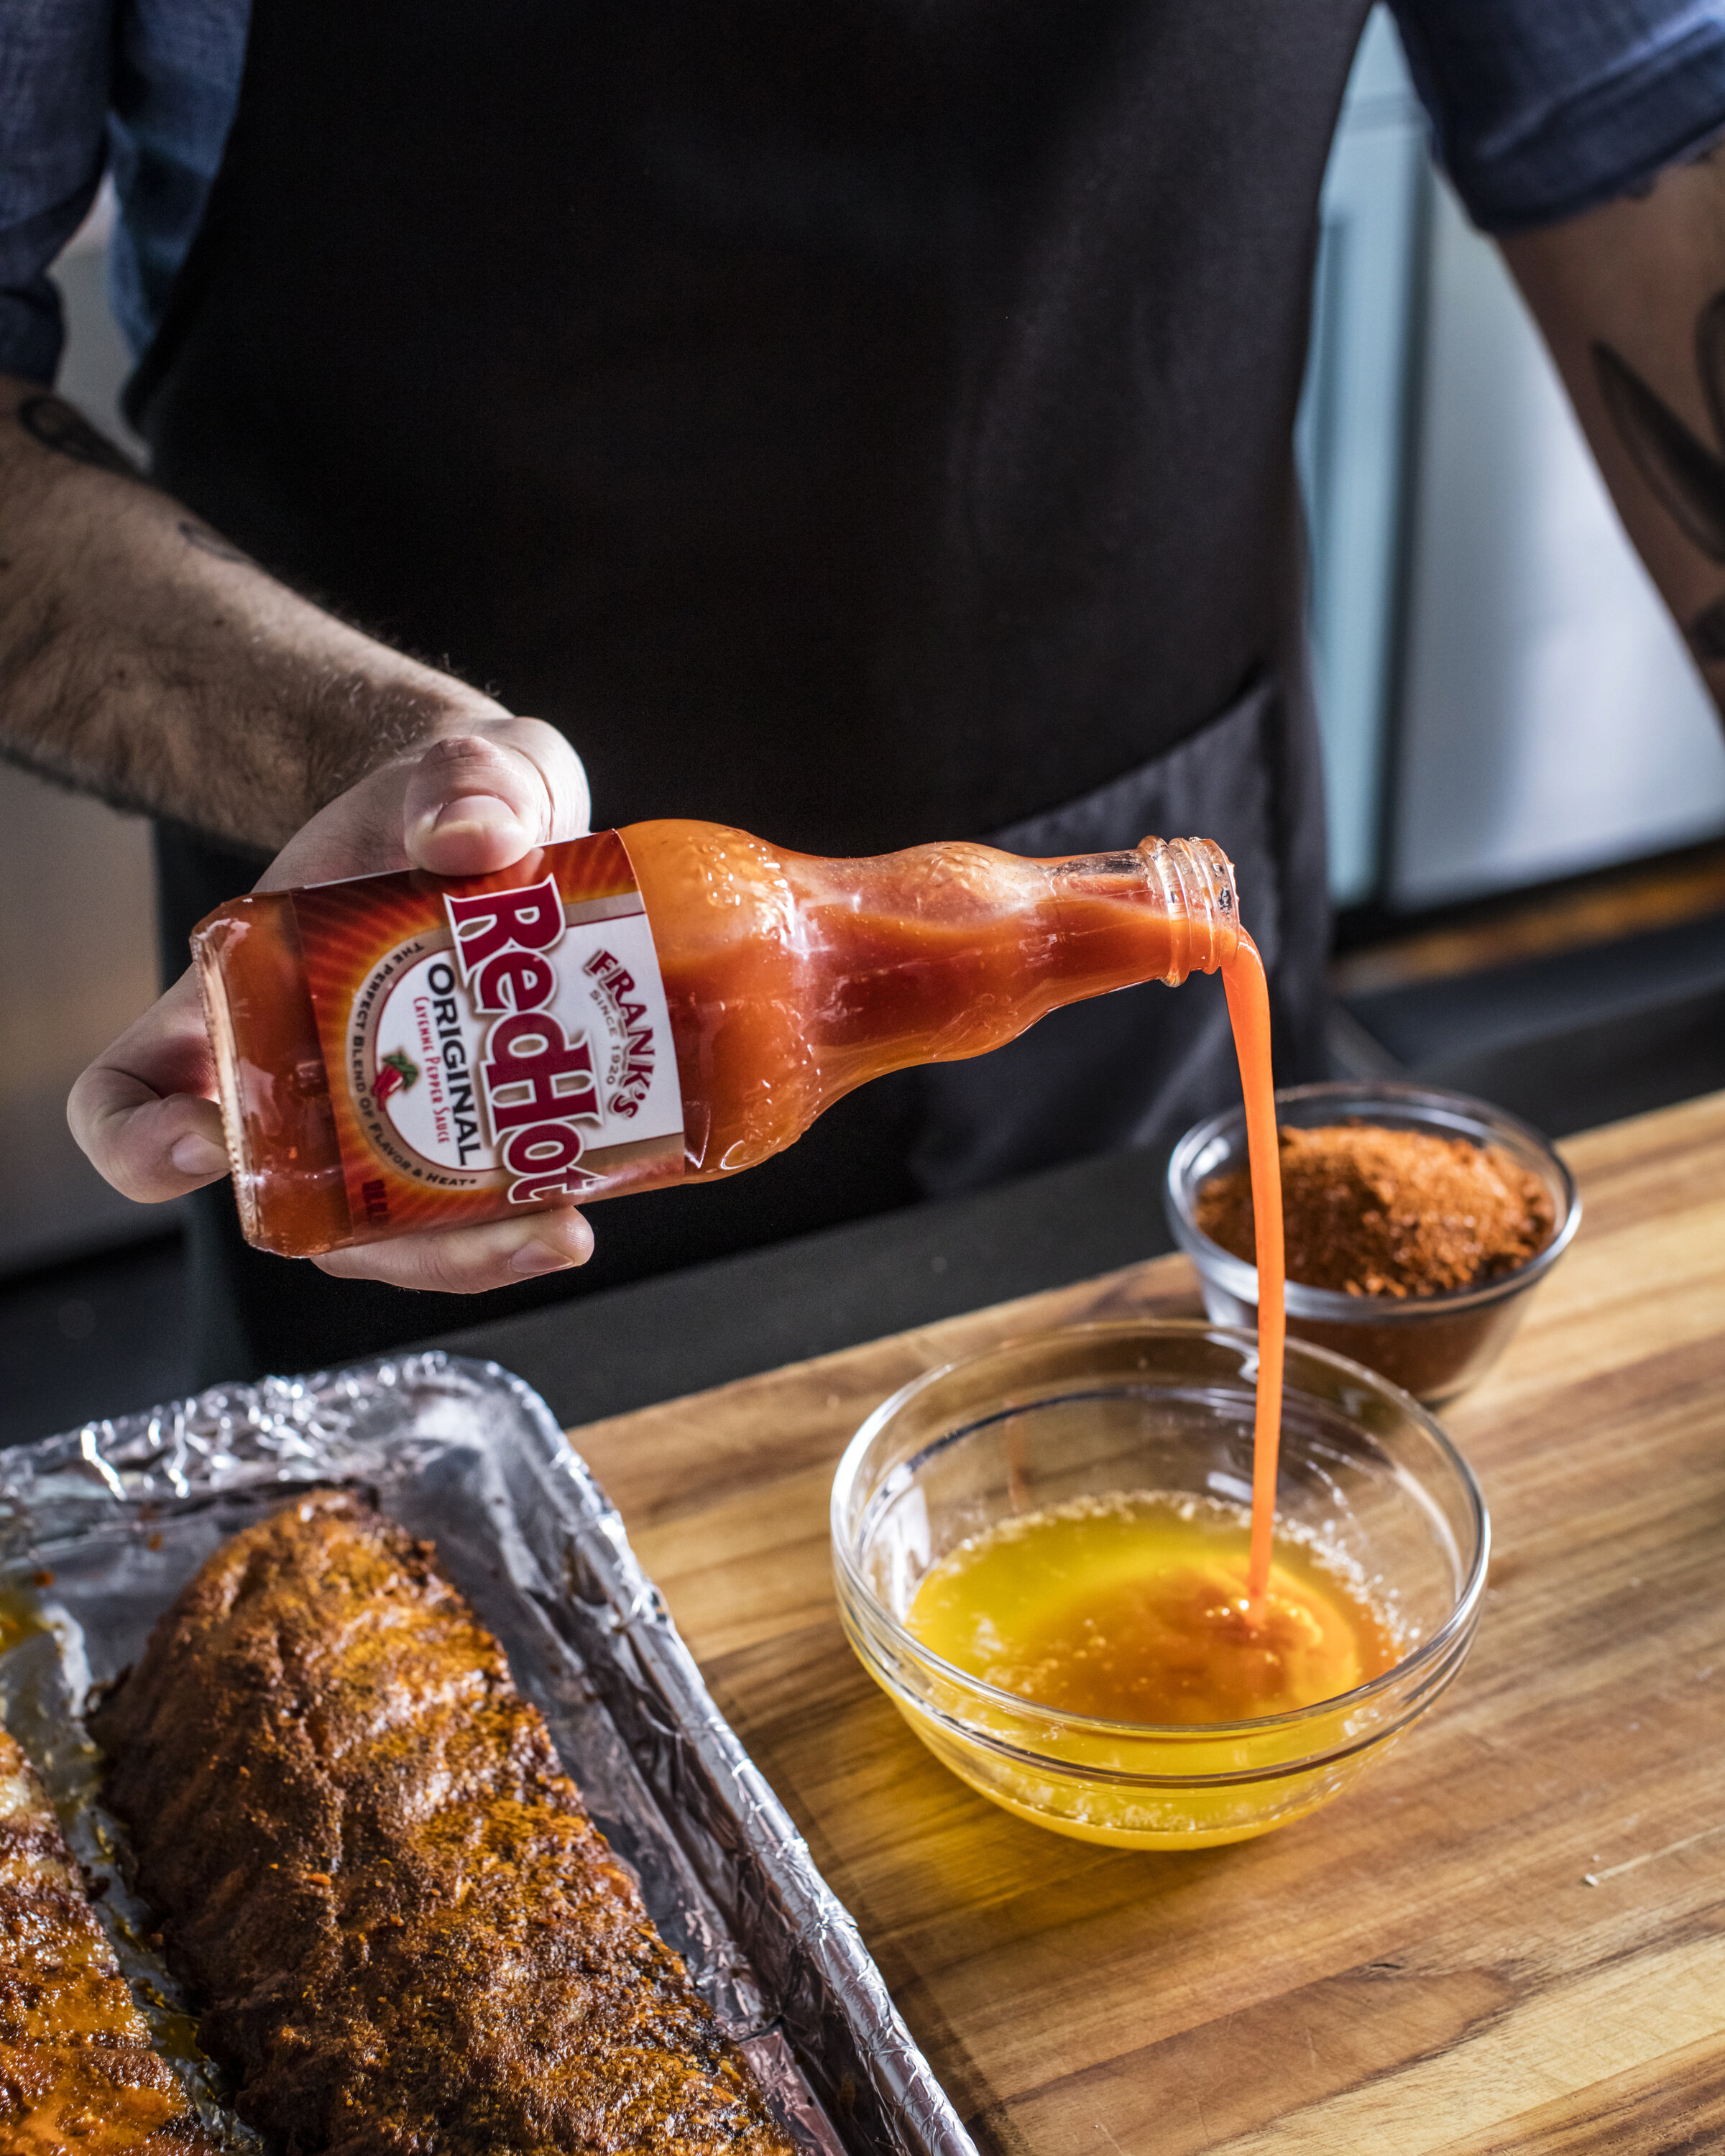 Franks RedHot with Andrew Rea, Binging with Babish,  Food stylist, Judy Kim Photographer, Eric Medsker